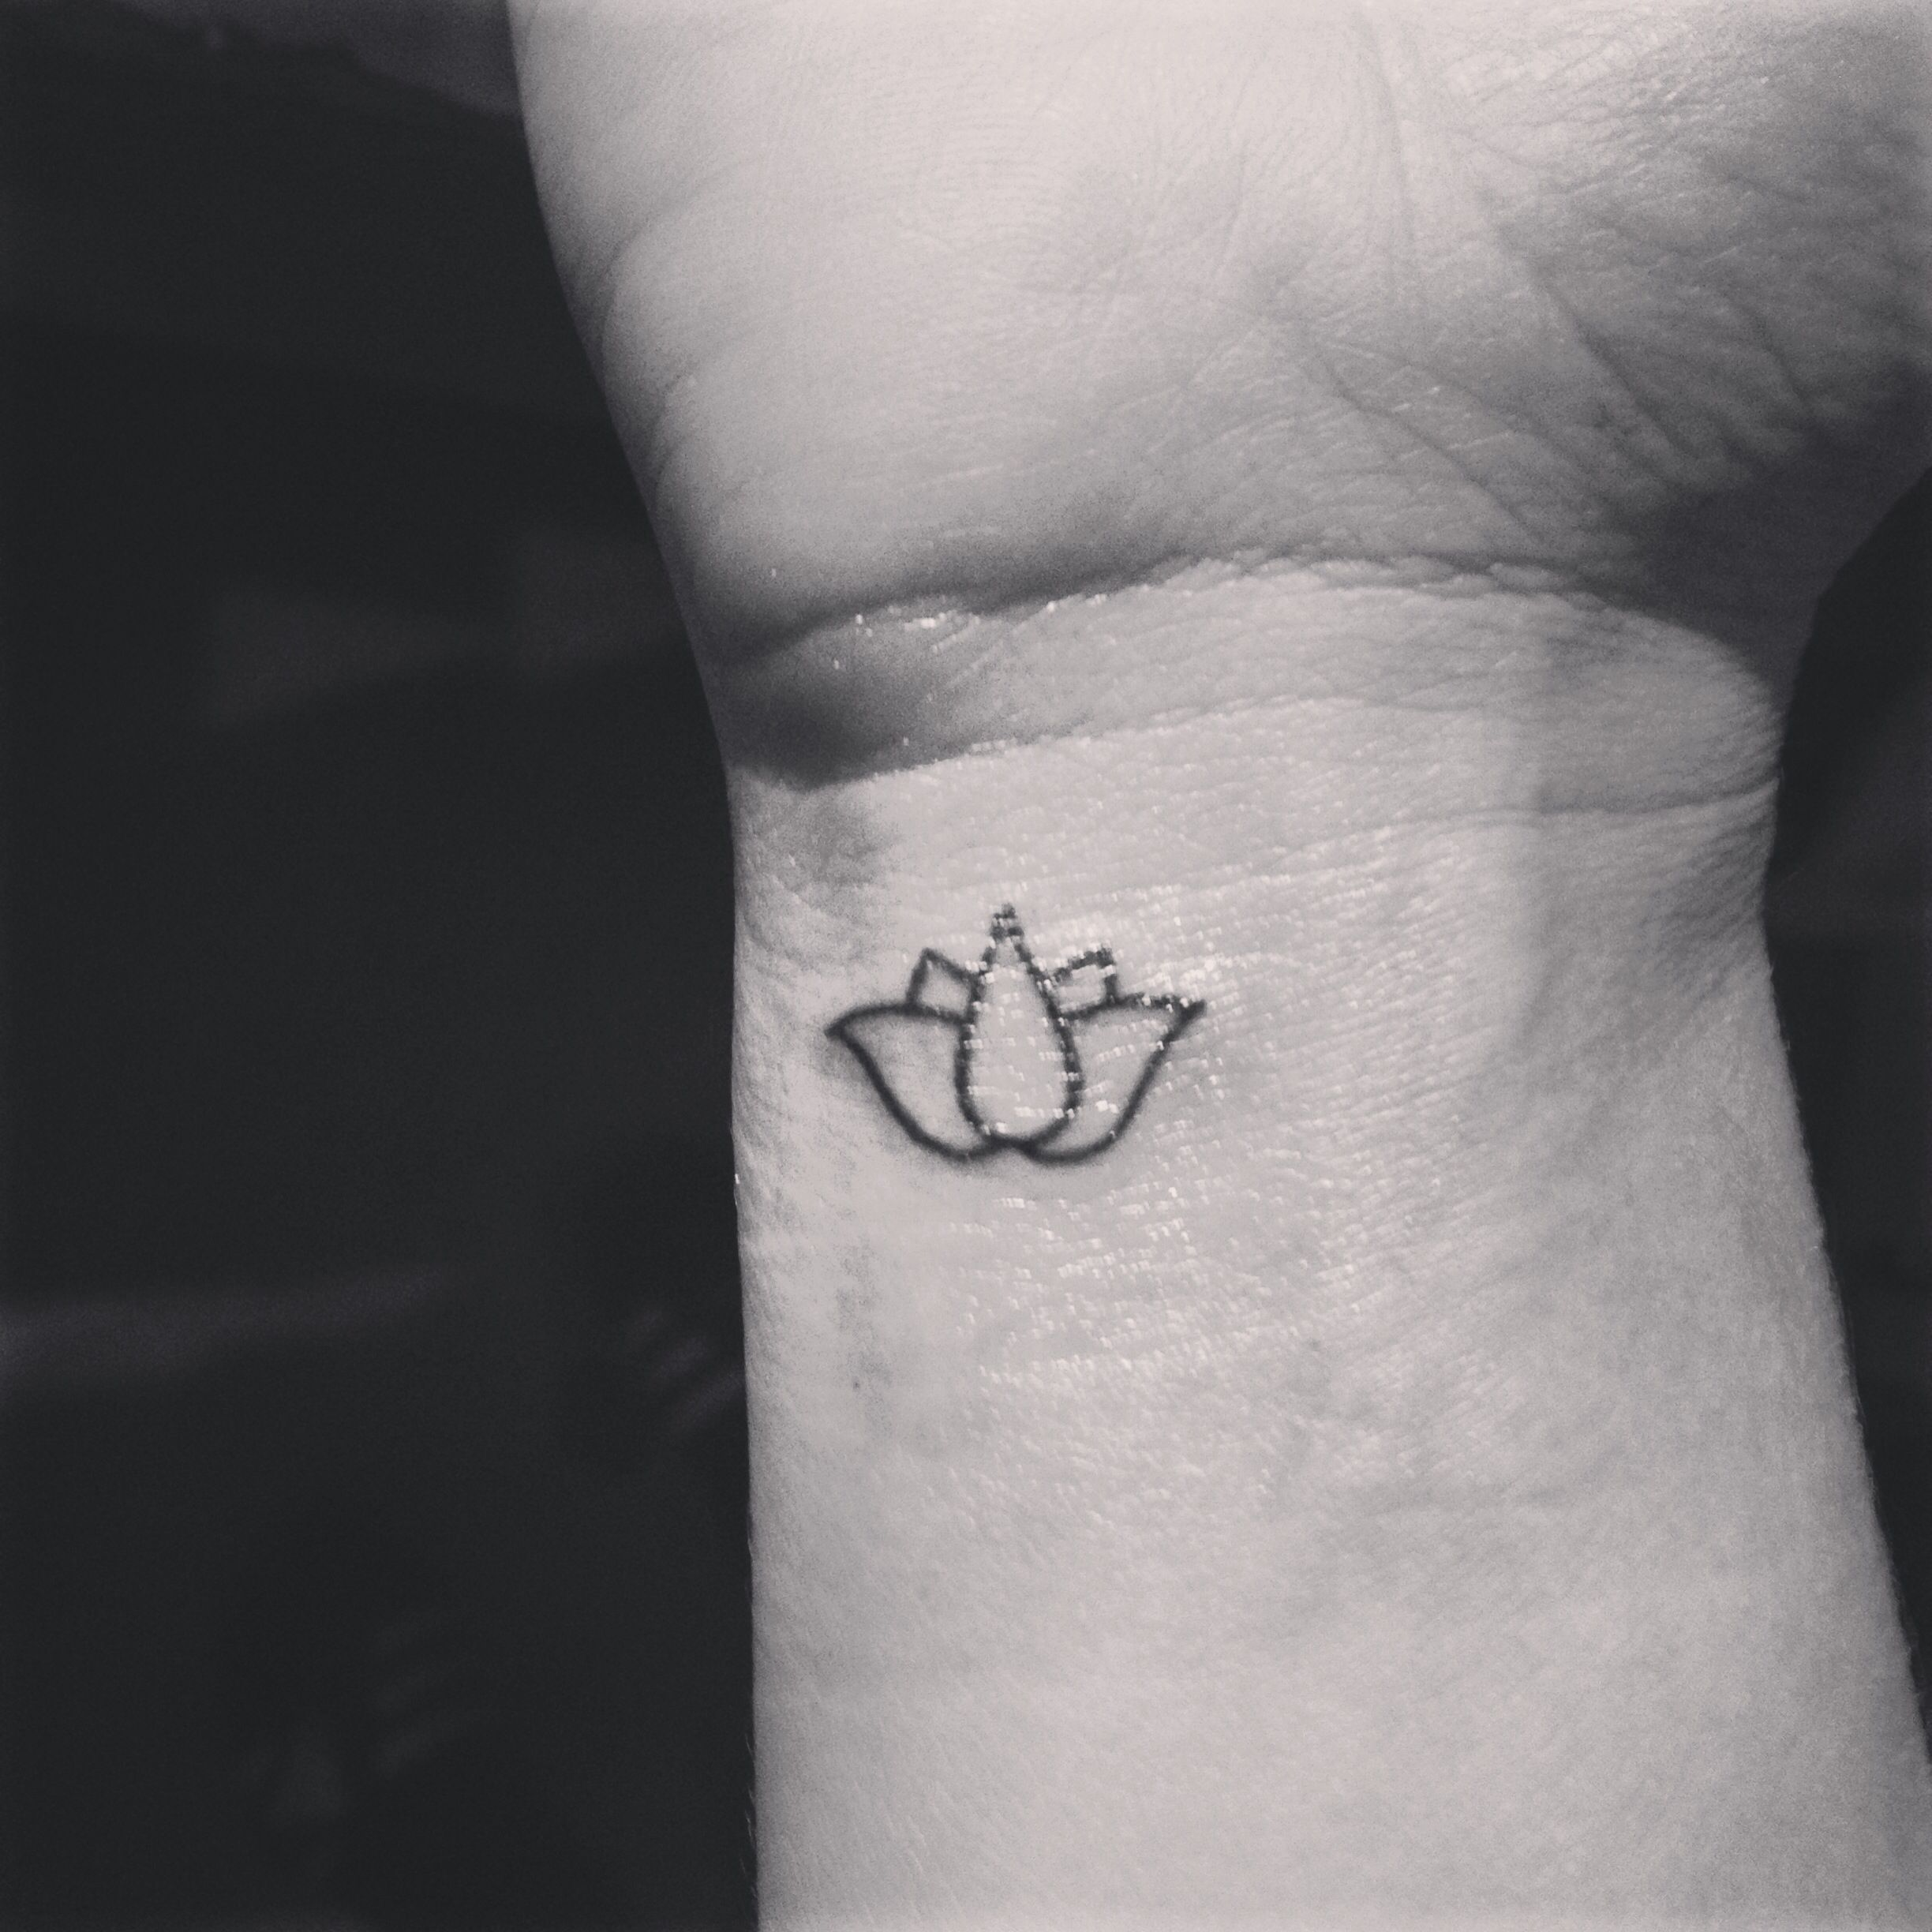 Black and white, flower, lotus flower, minimalist, wrist